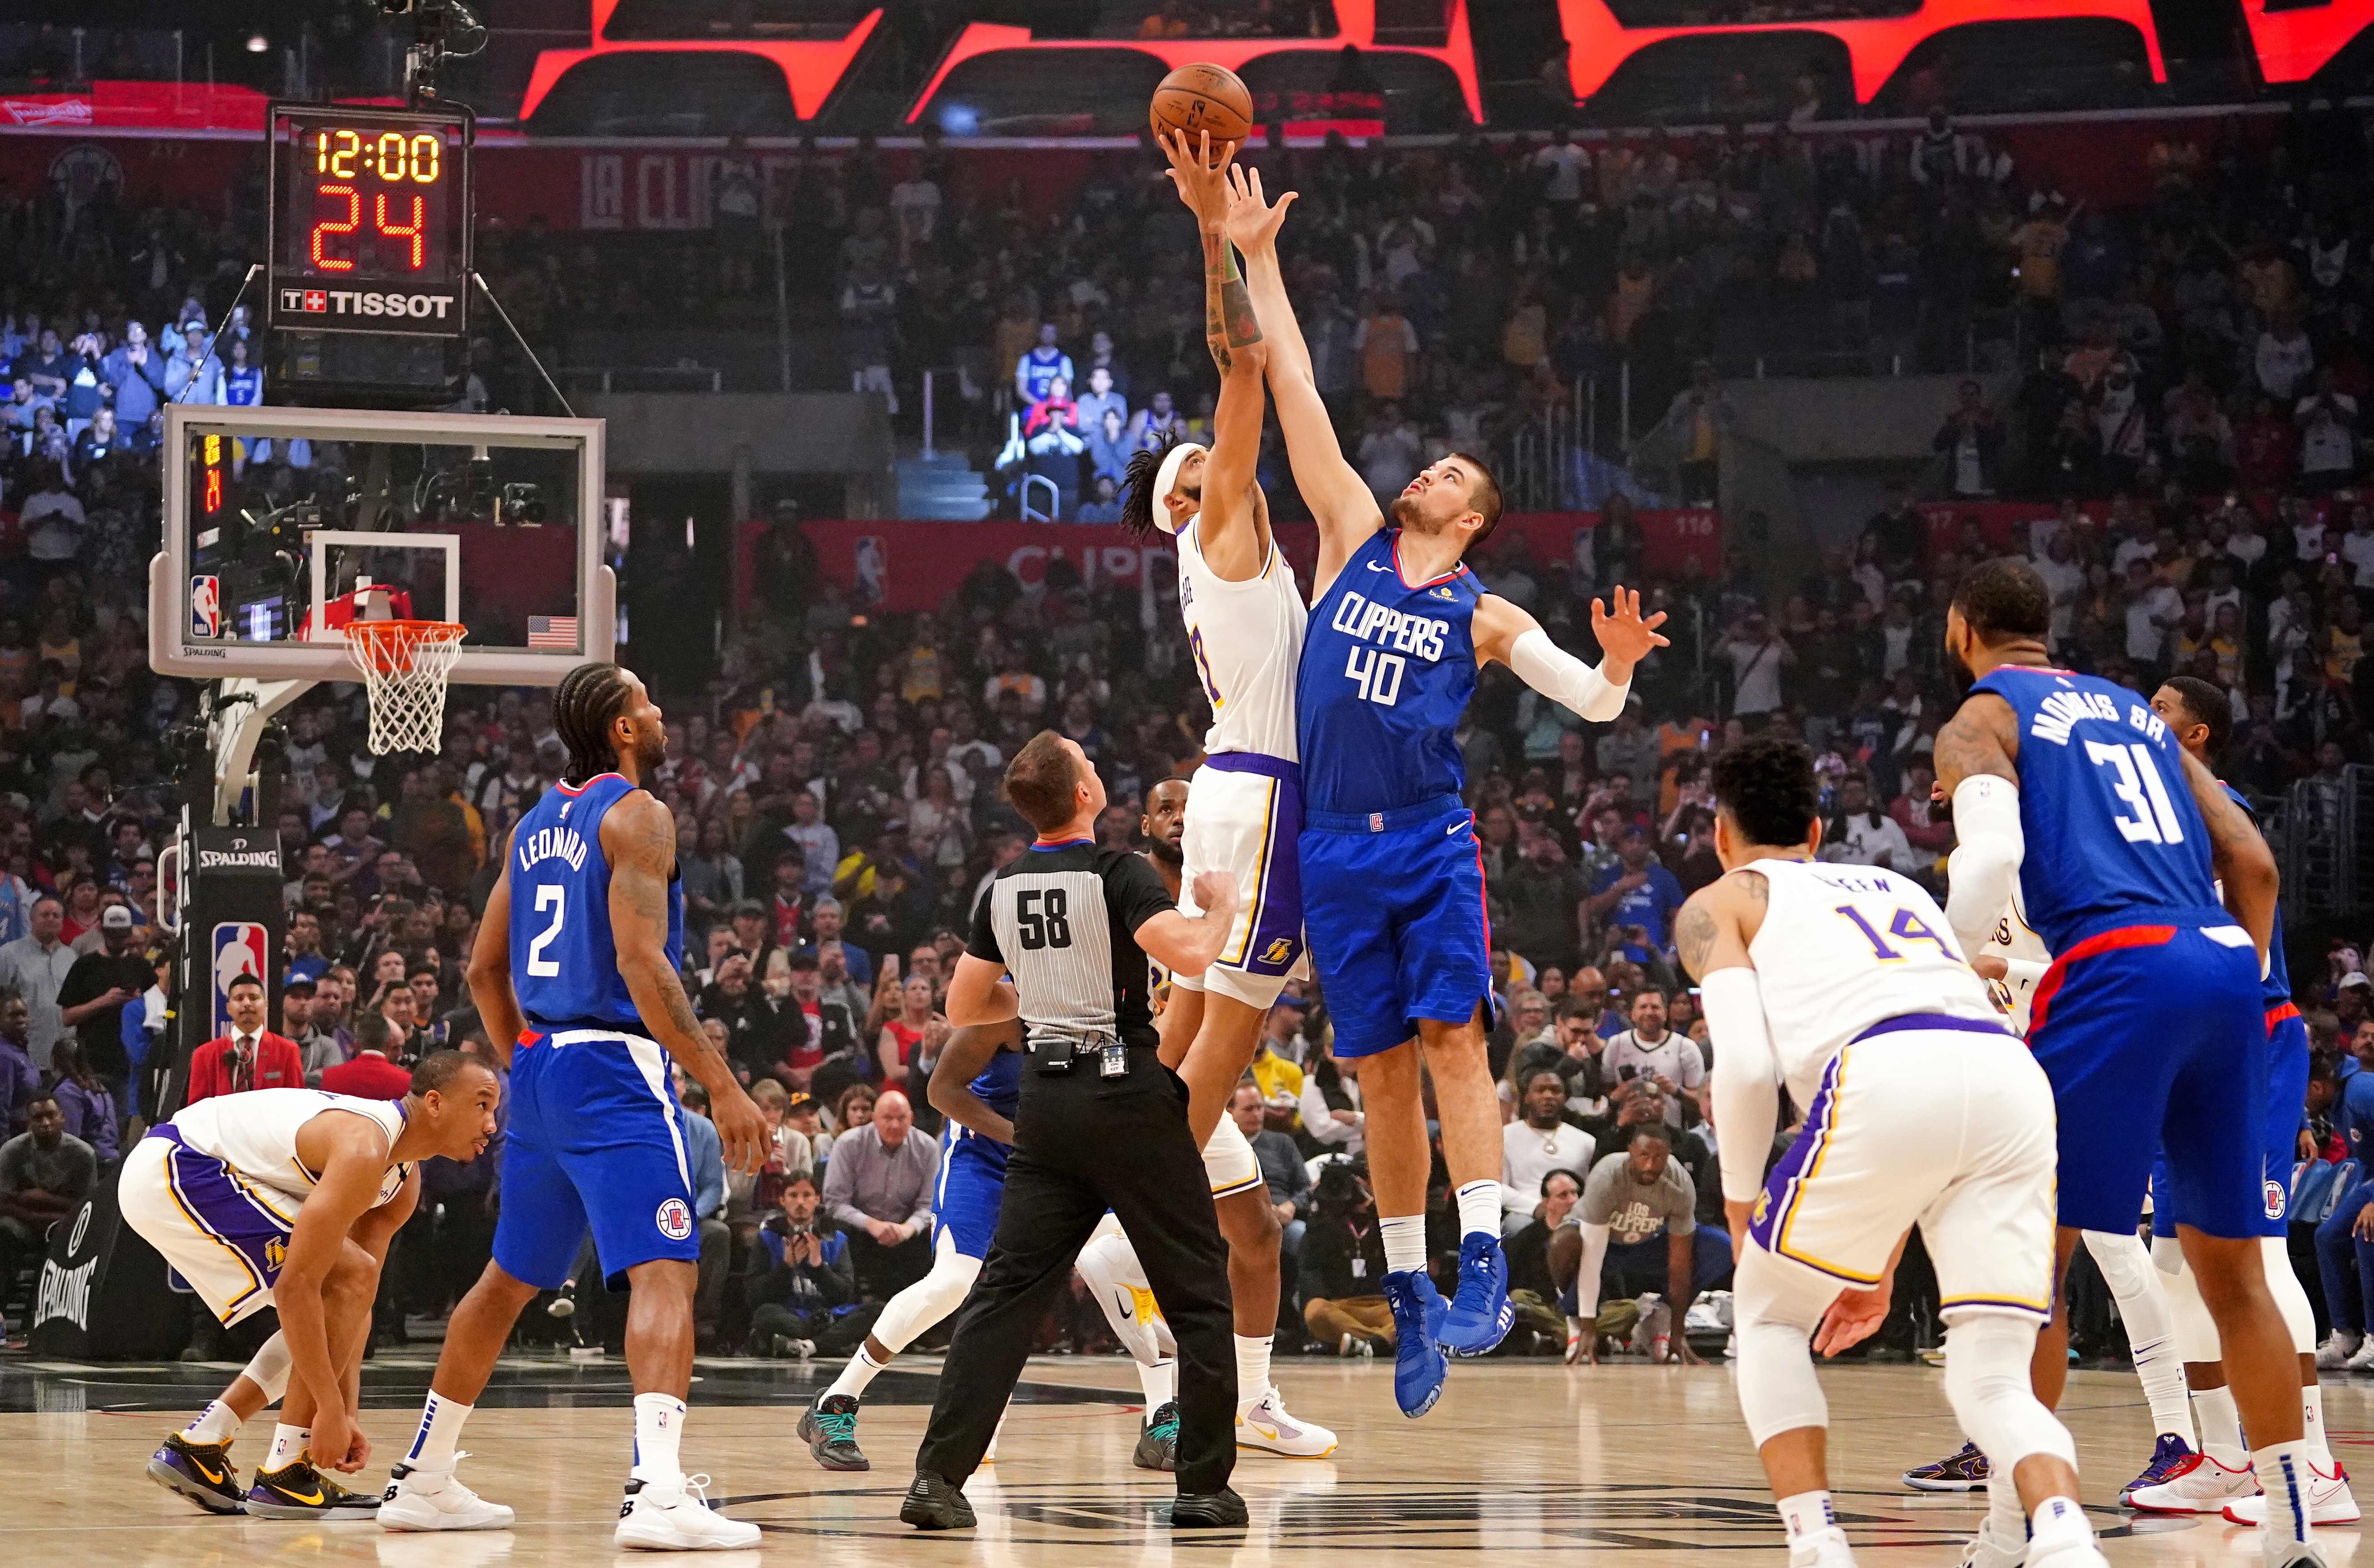 Los Angeles Lakers center JaVale McGee and LA Clippers center Ivica Zubac battle for the opening tipoff during the first half at Staples Center.